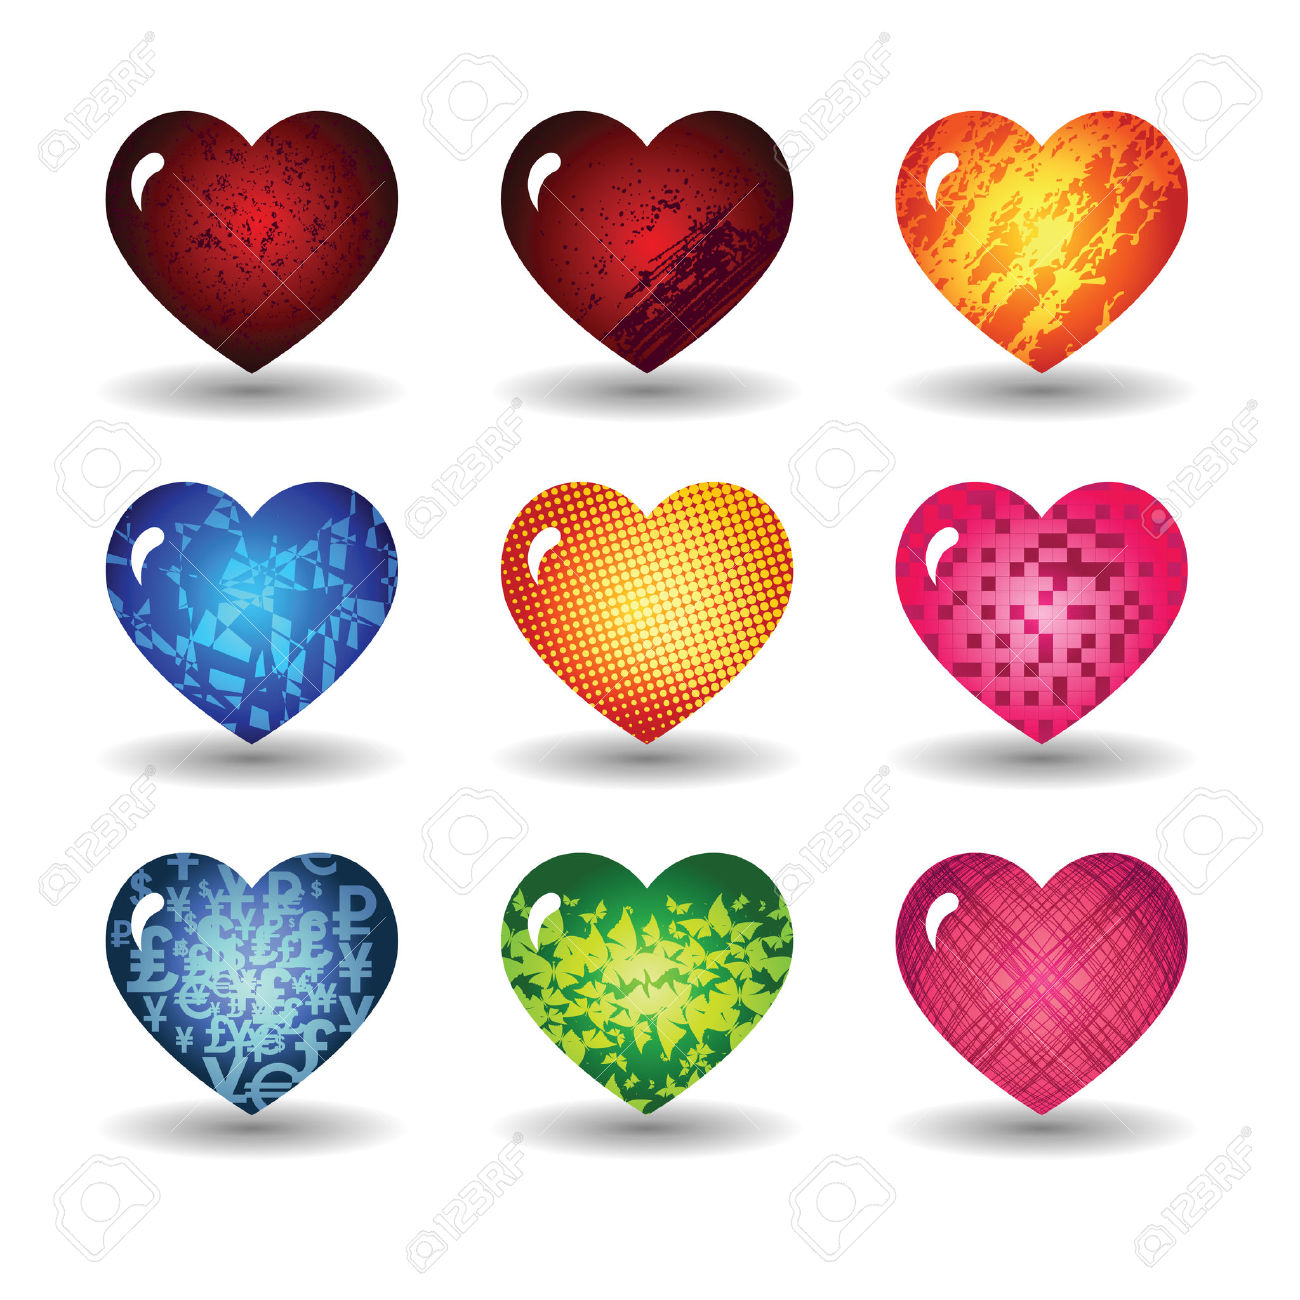 Set The Hearts Of Valentine's Day Royalty Free Cliparts, Vectors.